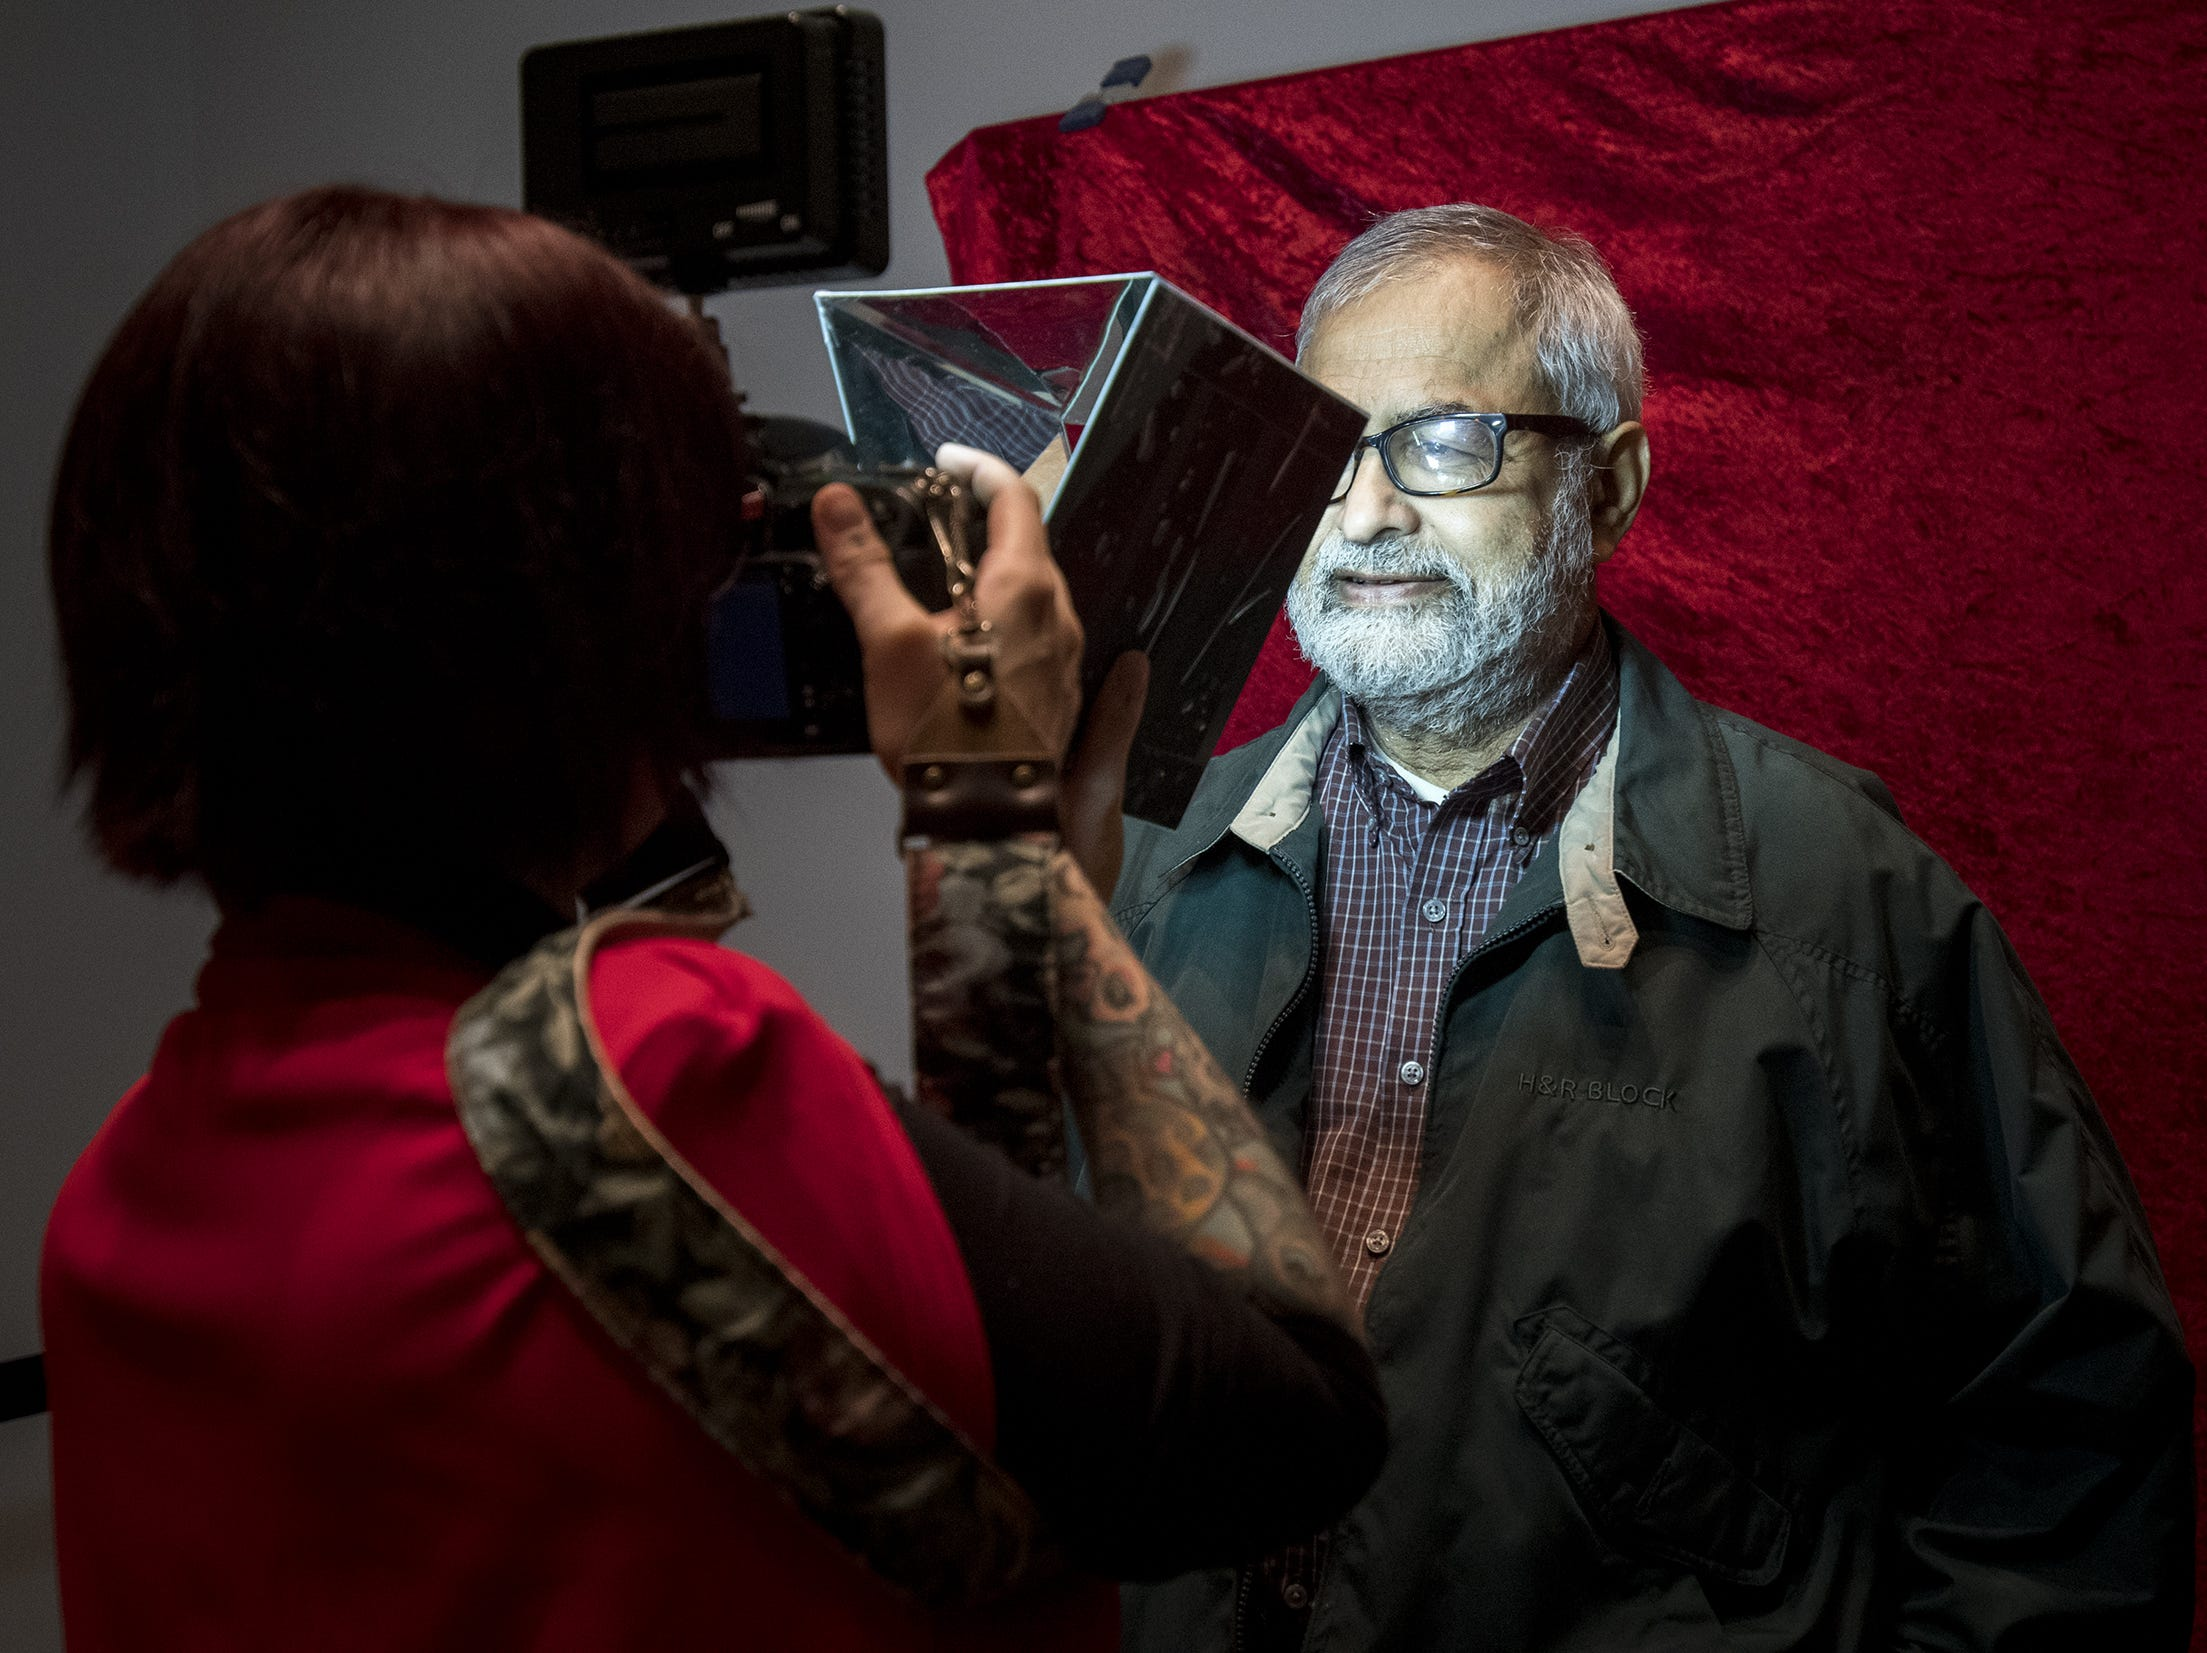 Photographer Jesse Fox takes the photo of Ramesh Shanbhag at a free photo booth during Art After Dark at the Cincinnati Art Museum Wednesday, November 21, 2018 in Cincinnati, Ohio.